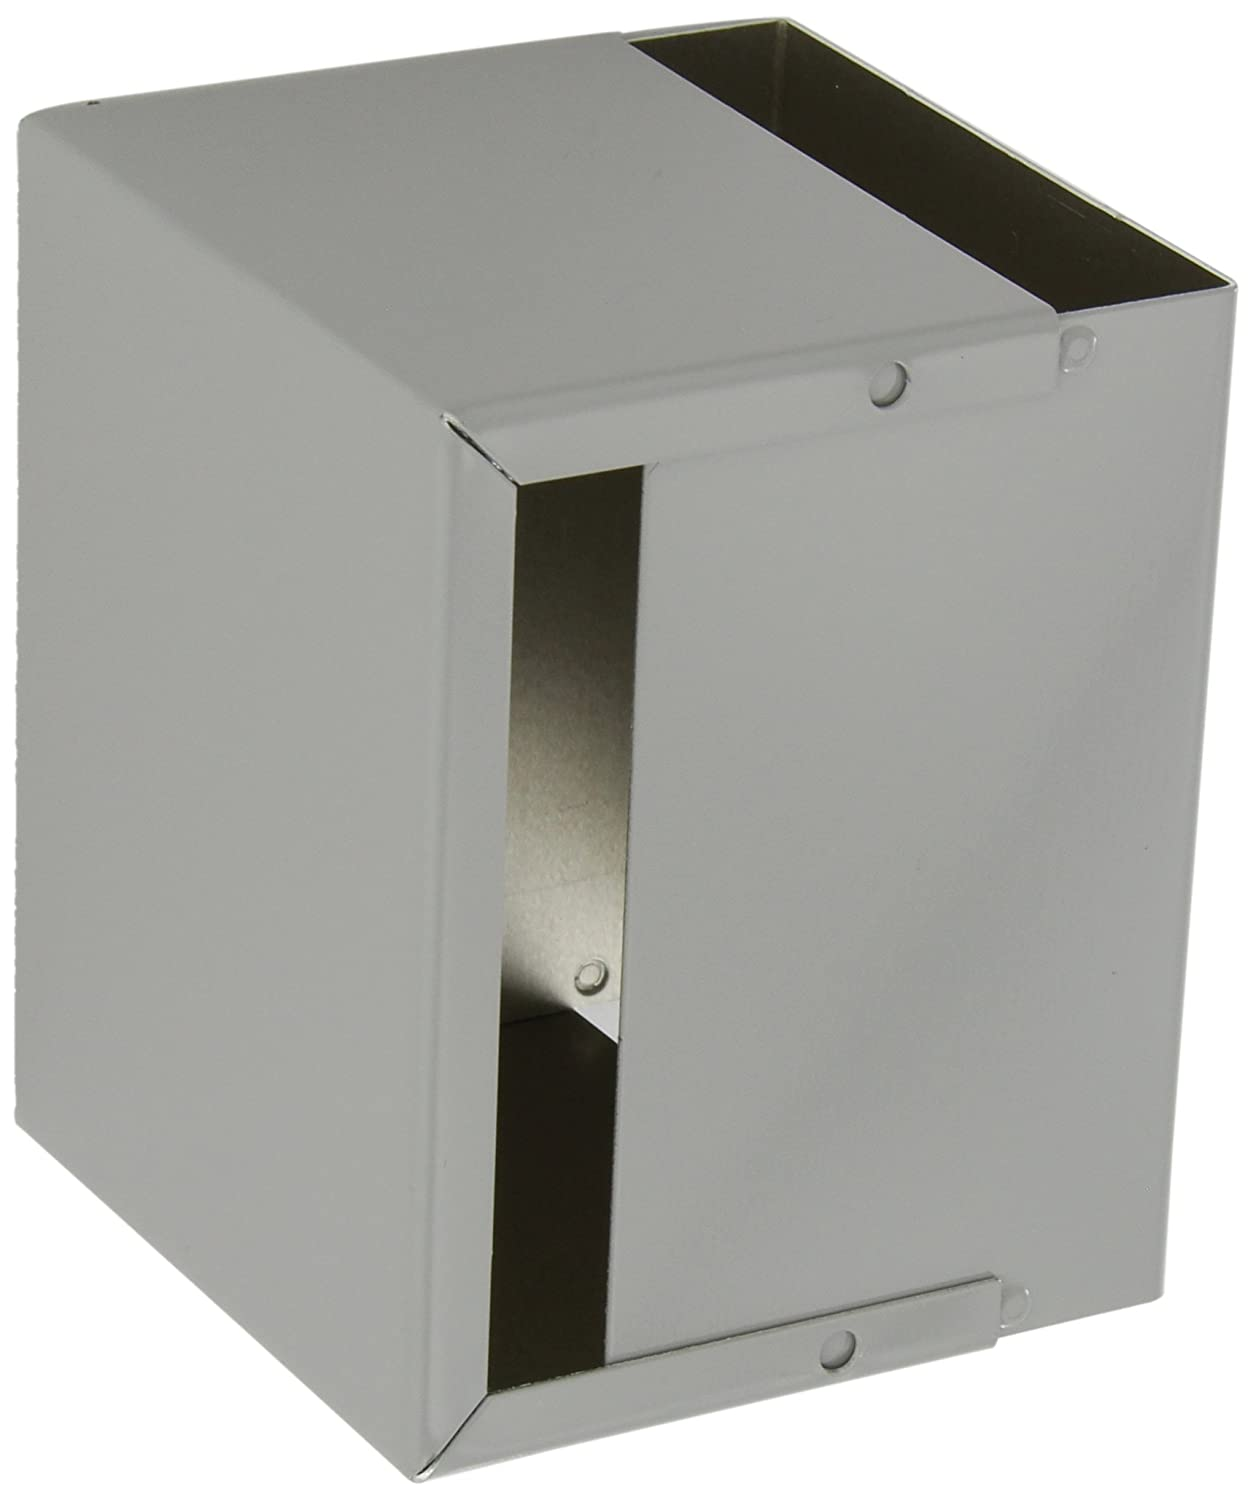 5 Length x 4 Width x 3 Height BUD Industries CU-2105-B Aluminum Electronics Minibox Smooth Gray Finish